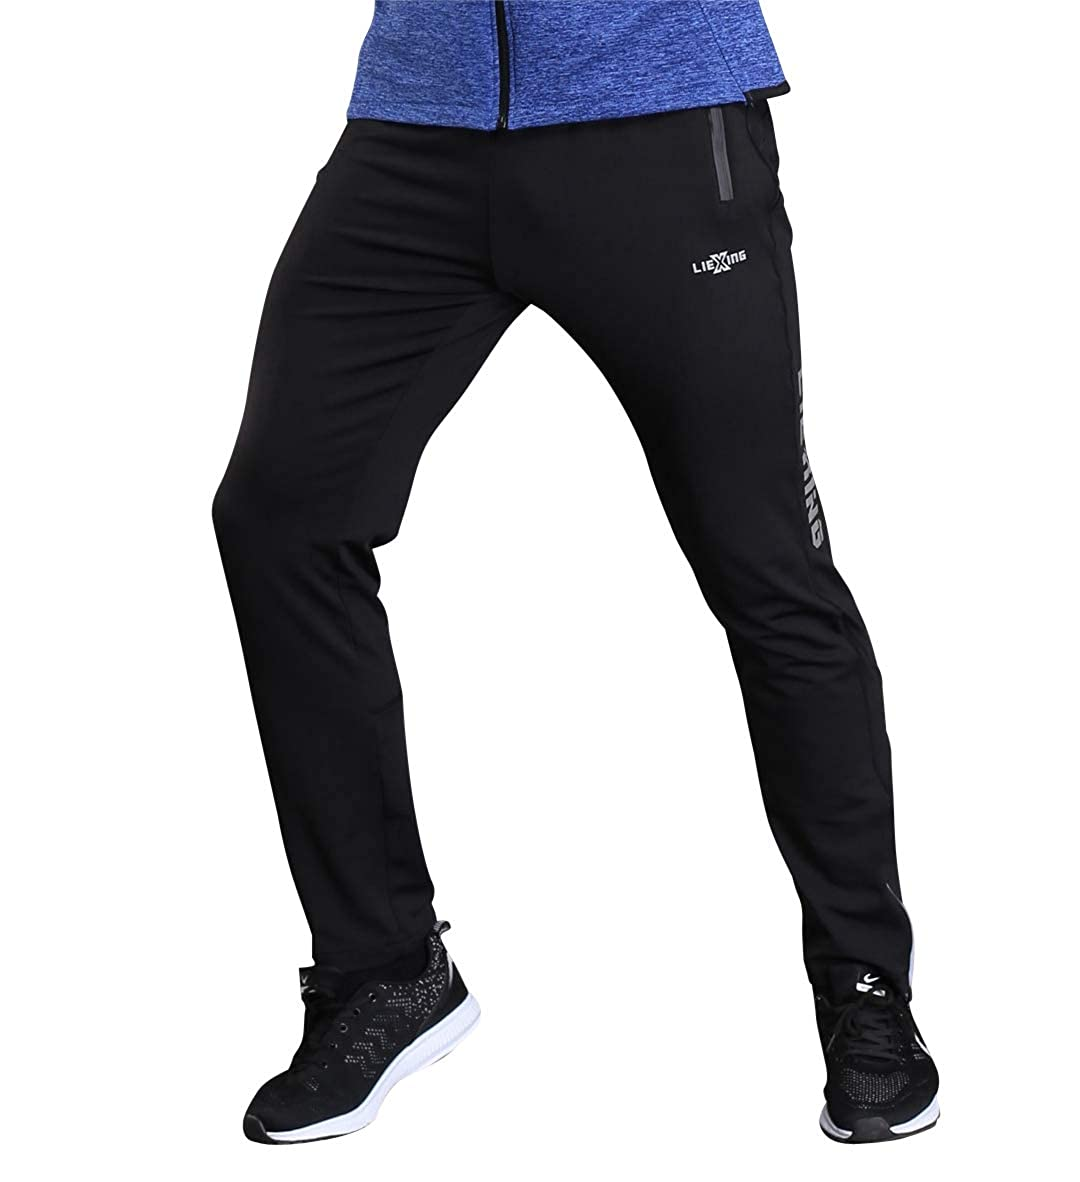 INIBUD Mens Fleece Jogger Pants Athletic Workout Sweat Pants with Zipper Pockets